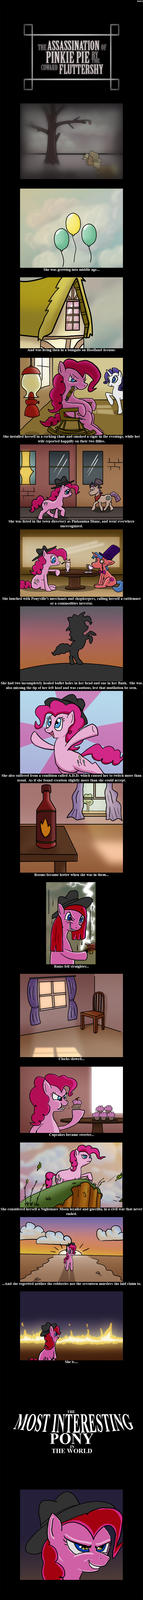 Assassination of Pinkie Pie